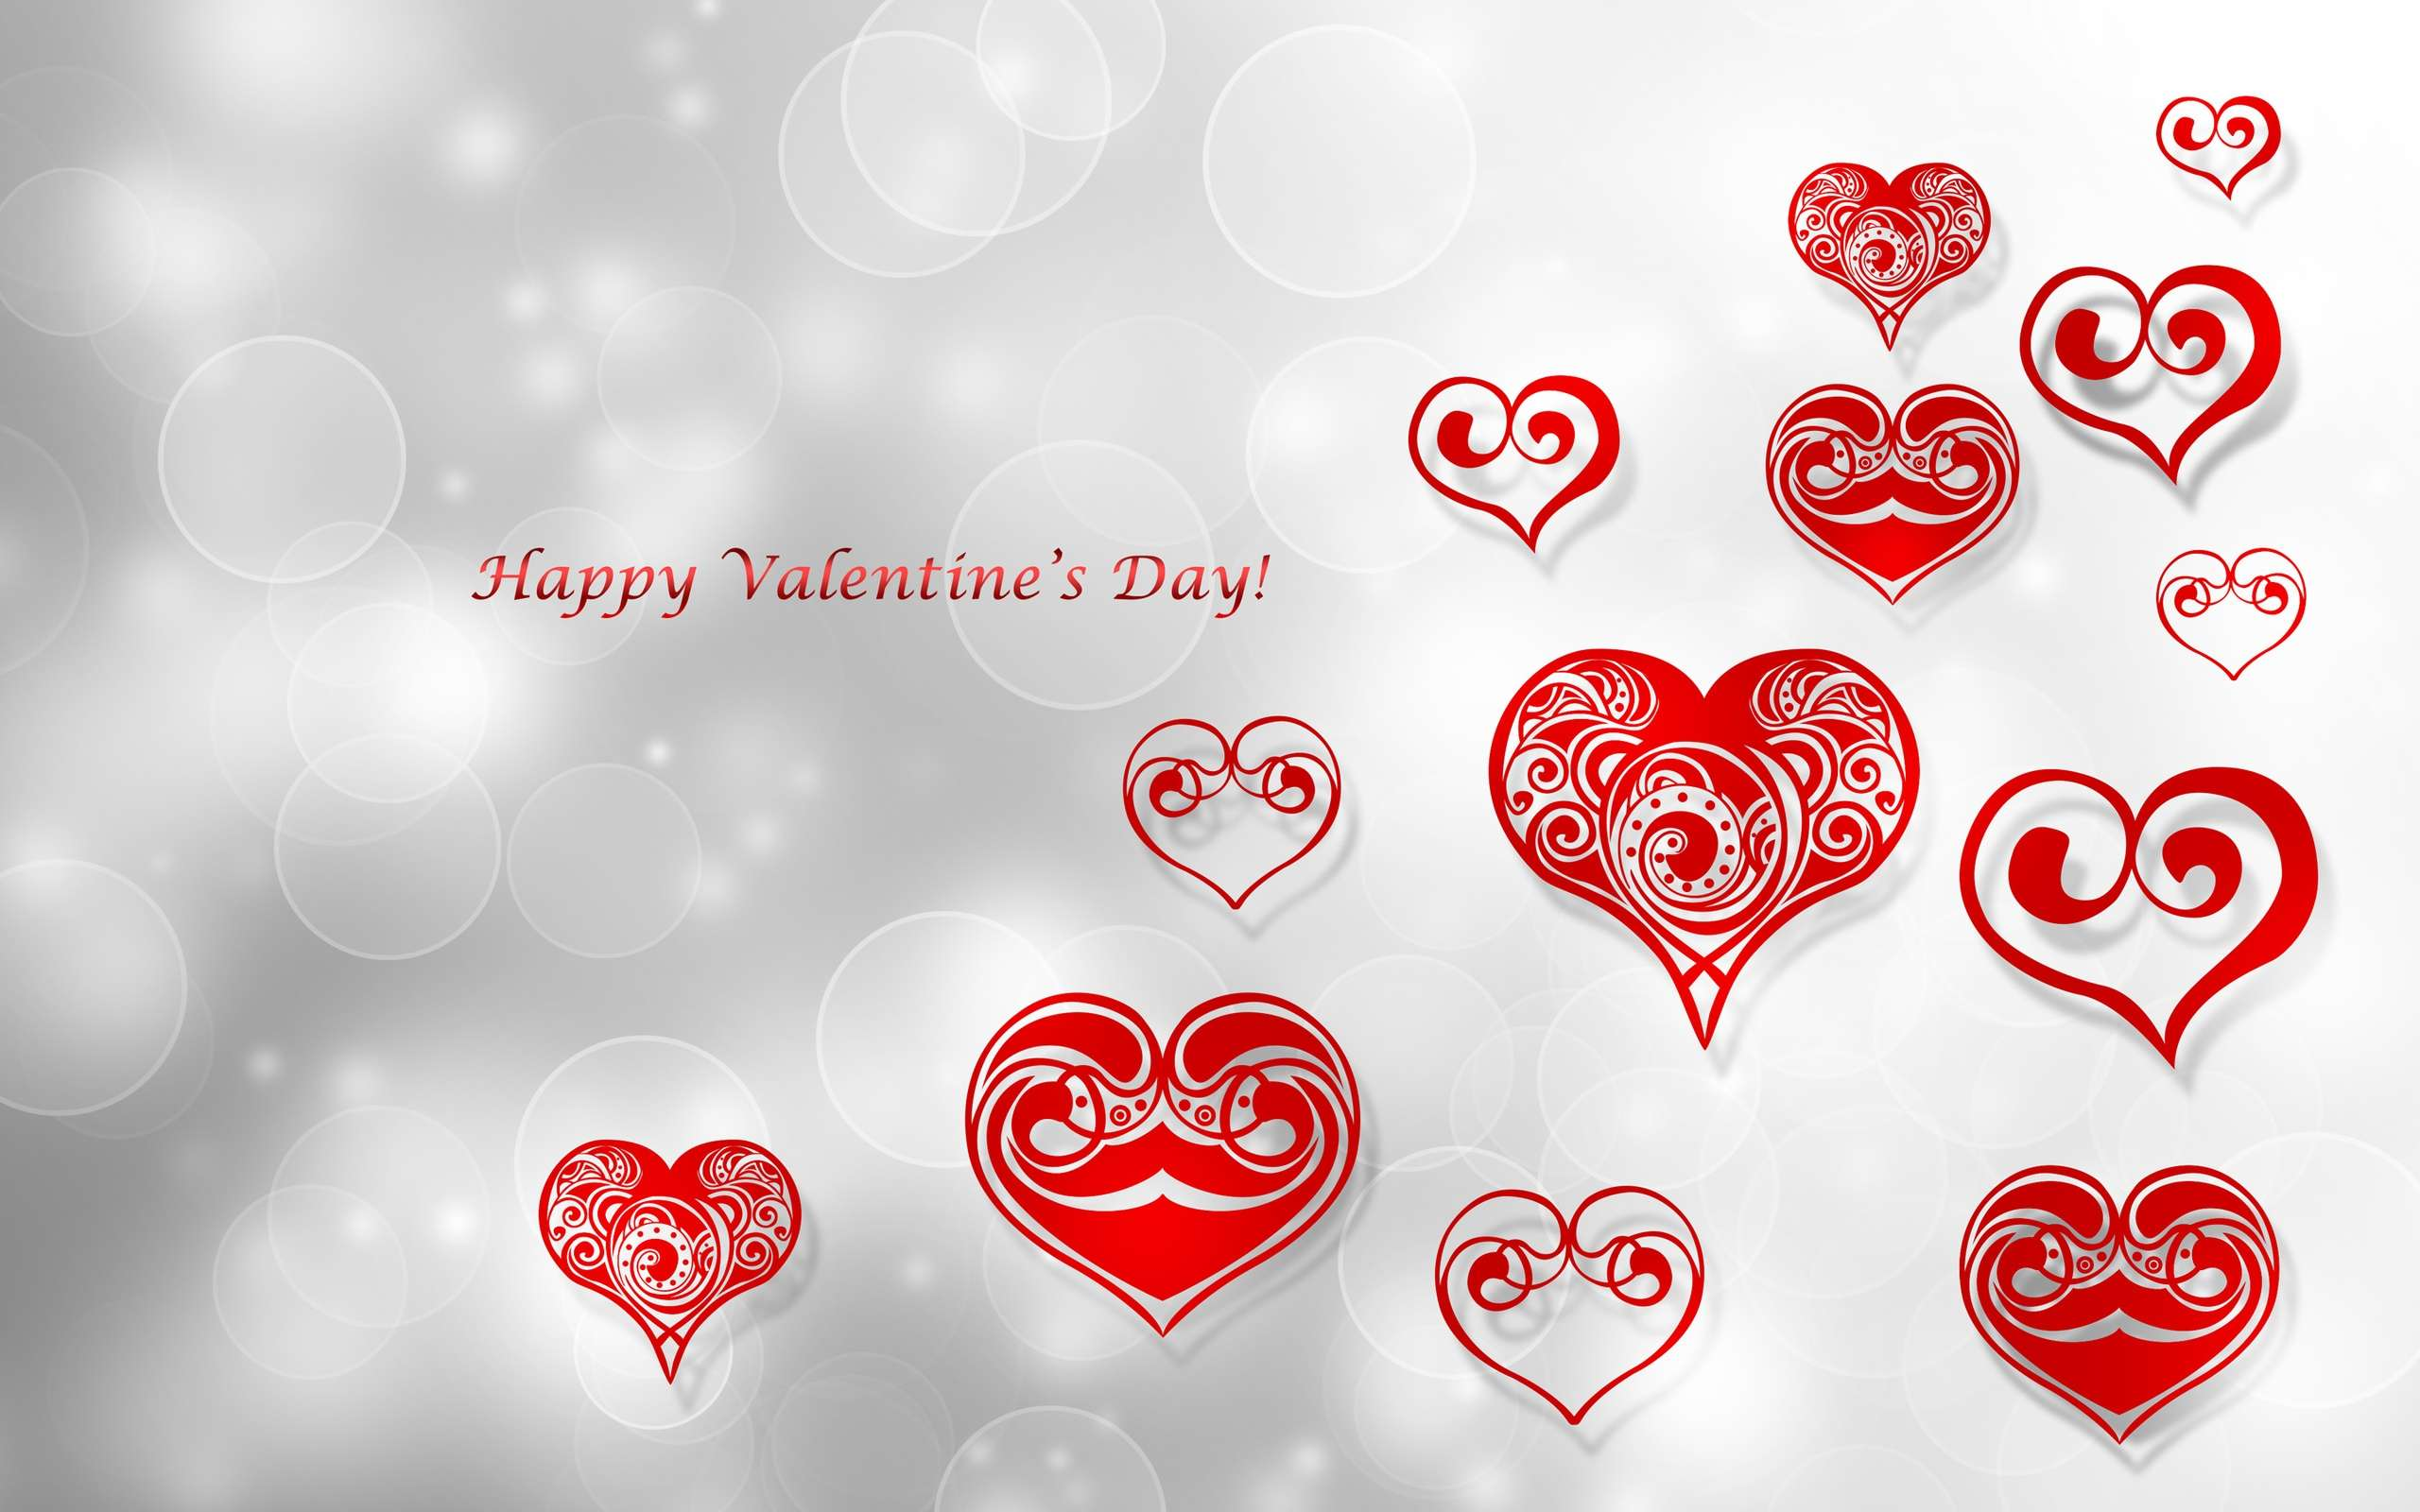 Happy Valentines Day Love Wallpapers 35 : Hd Wallpapers